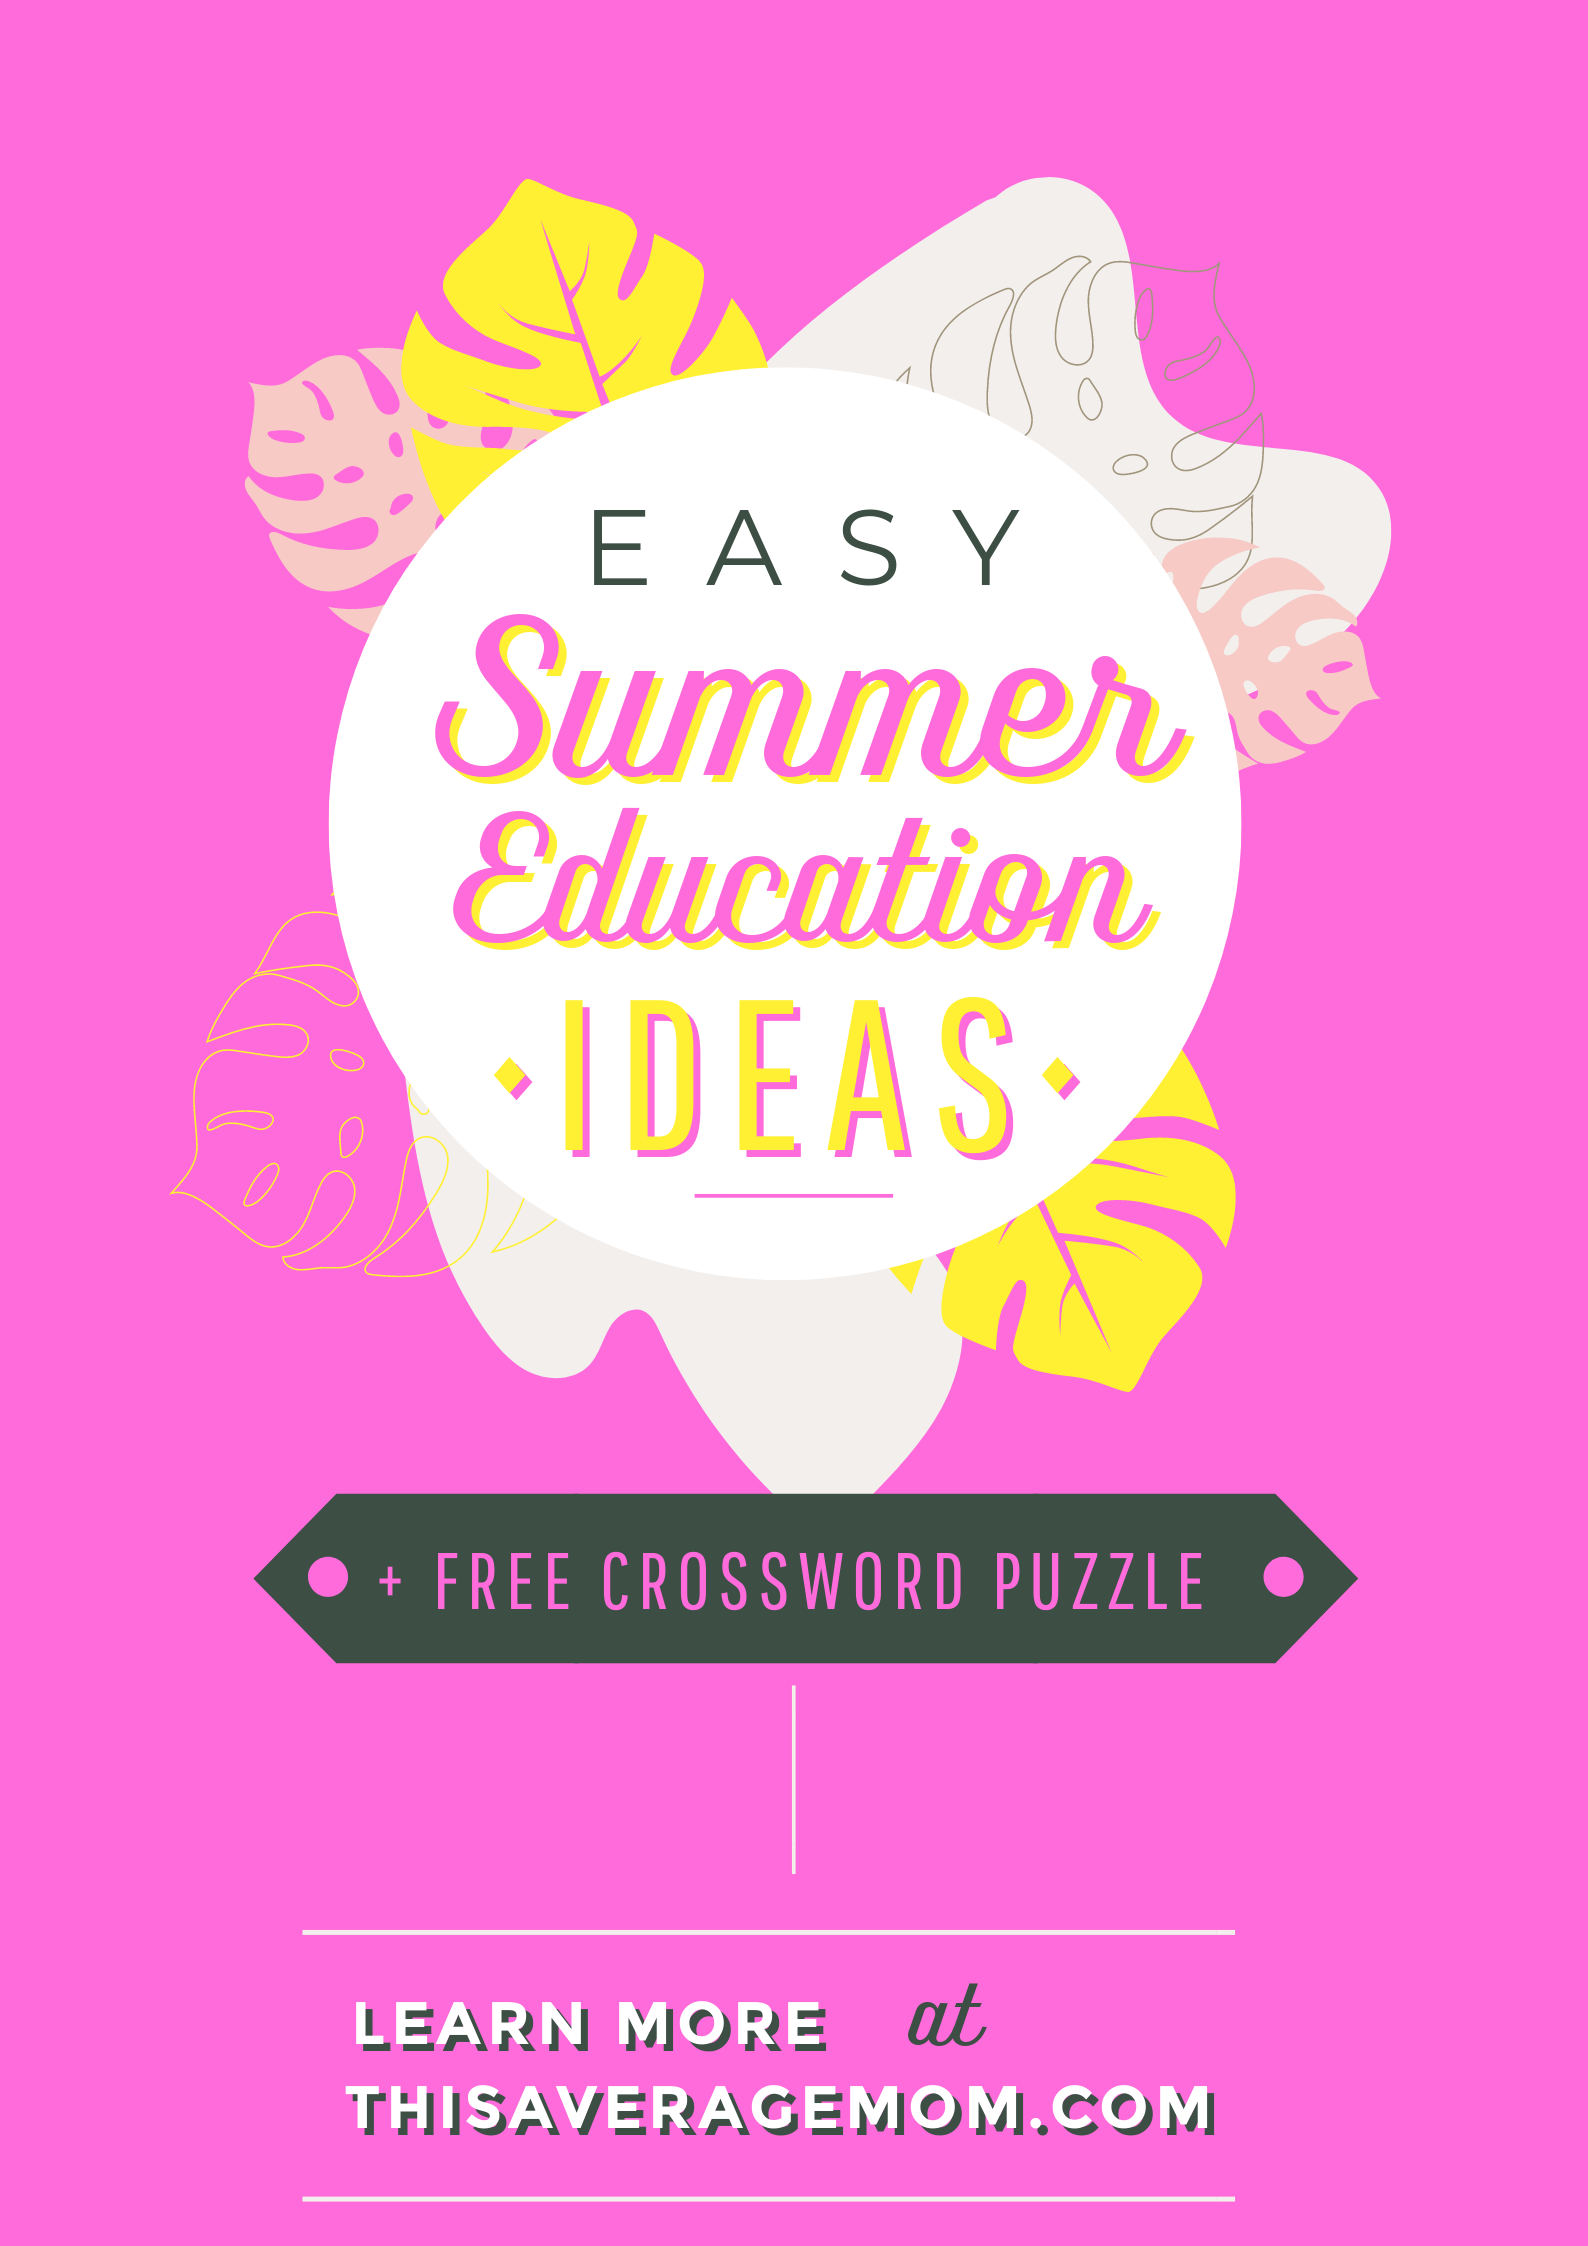 Want A Free Crossword Puzzle Worksheet For Your Kids This